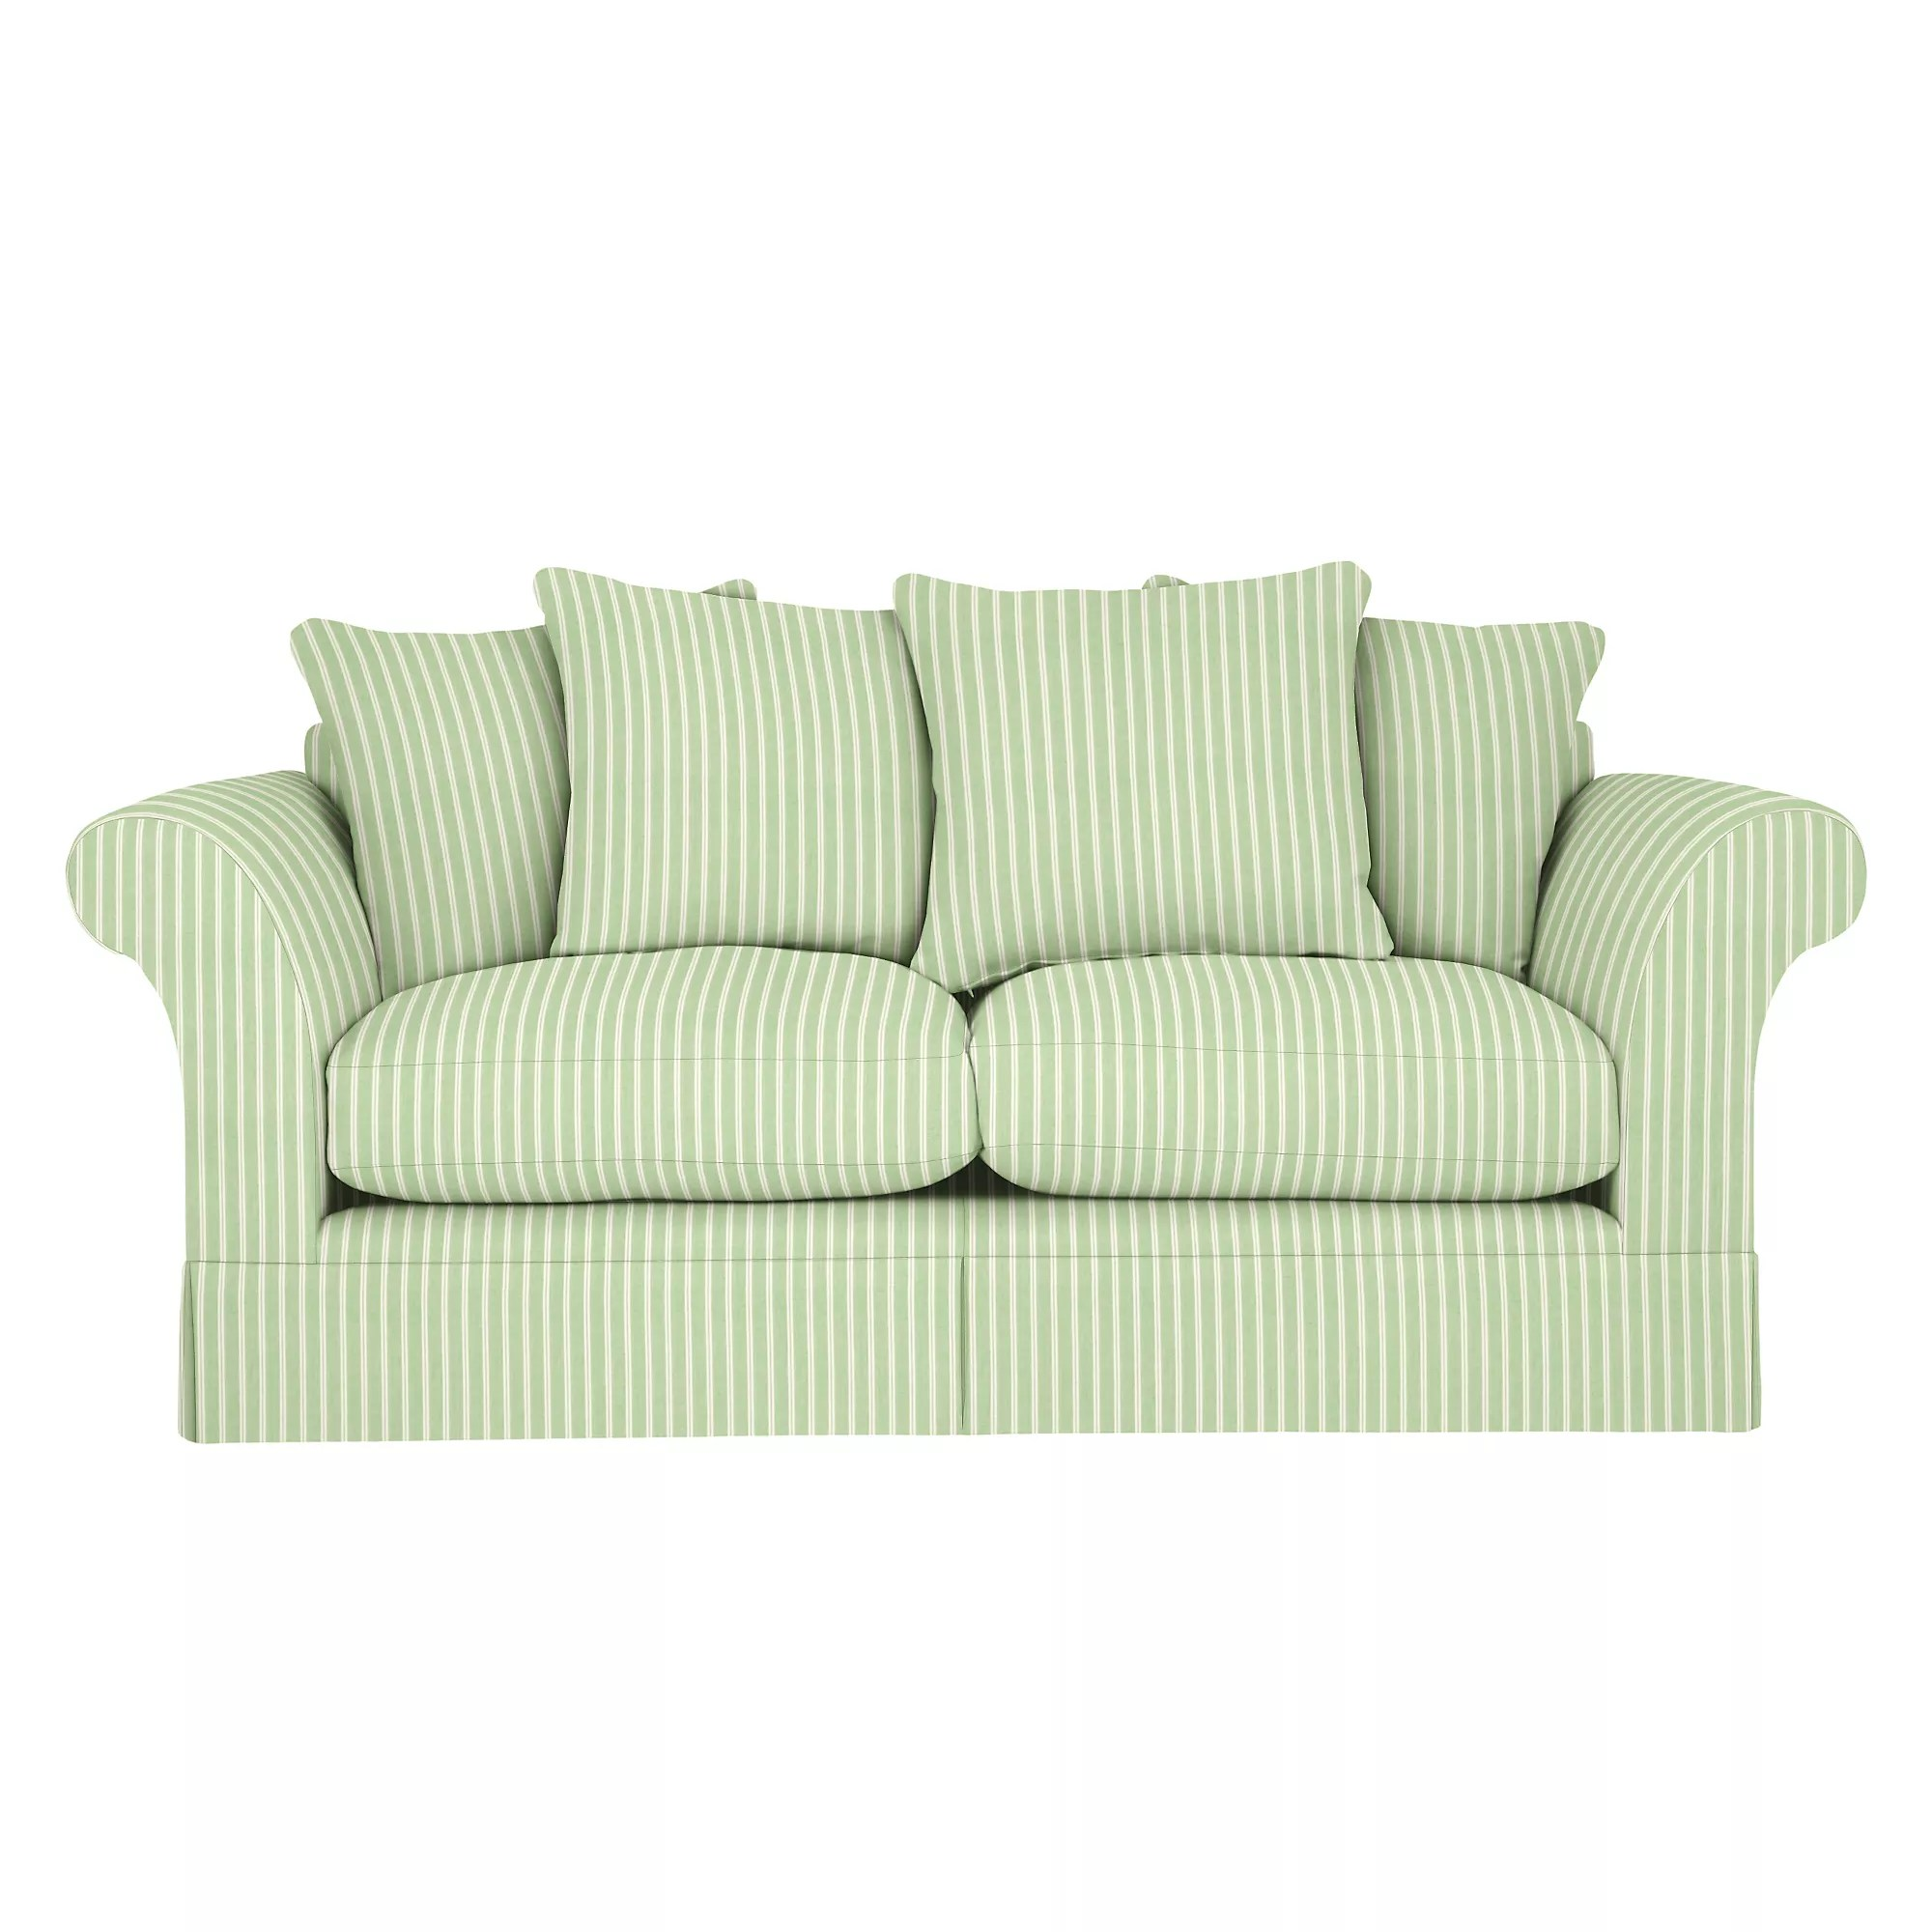 Sofa Berlin John Lewis Chambery Large Sofa Berlin Stripe Willow At John Lewis